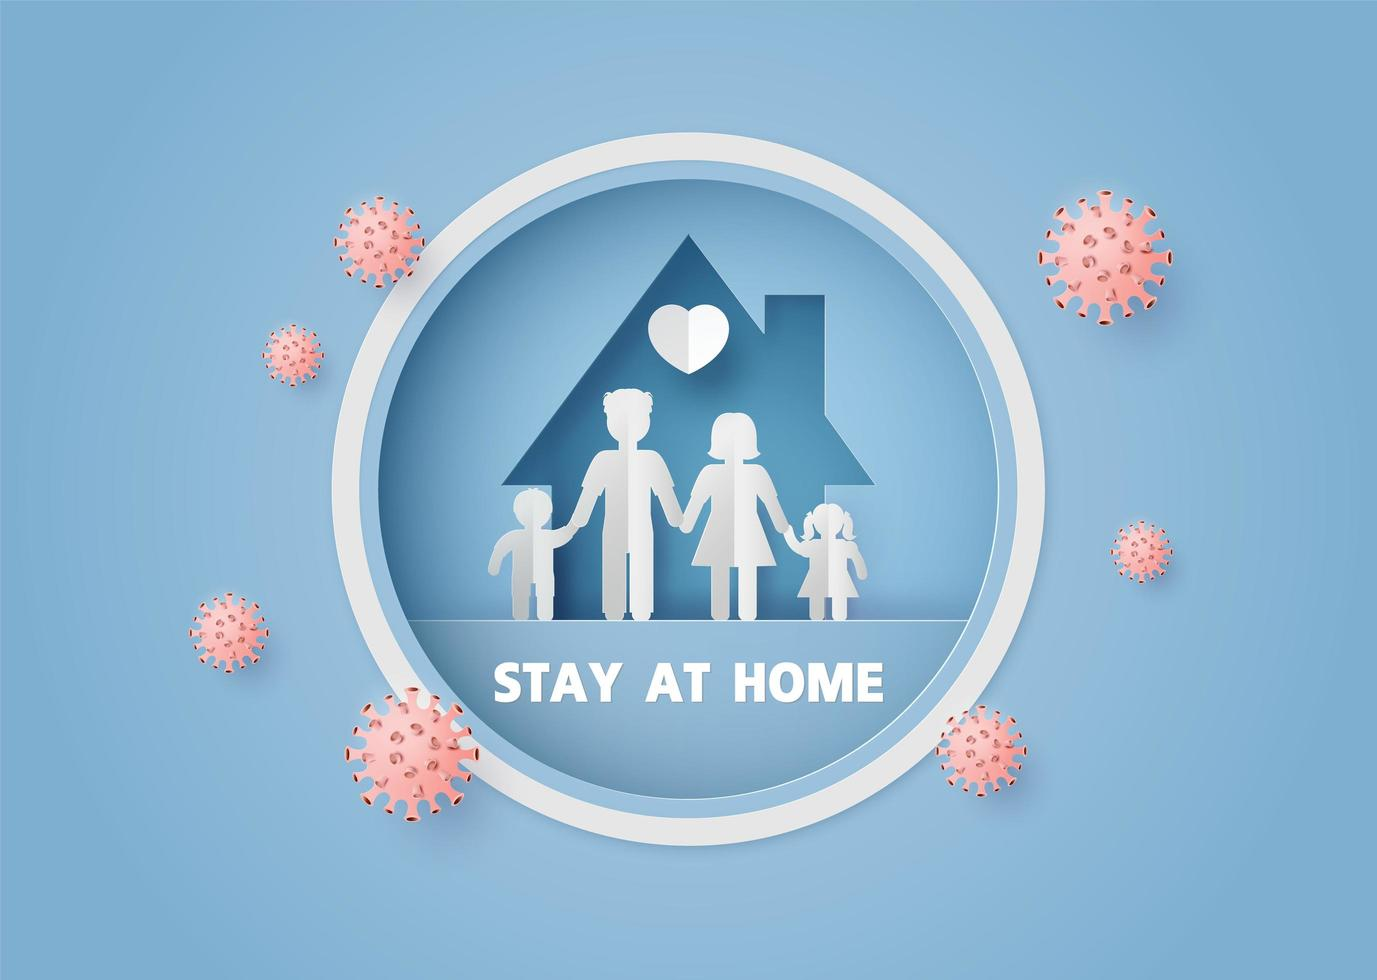 Stay home during the coronavirus epidemic. vector